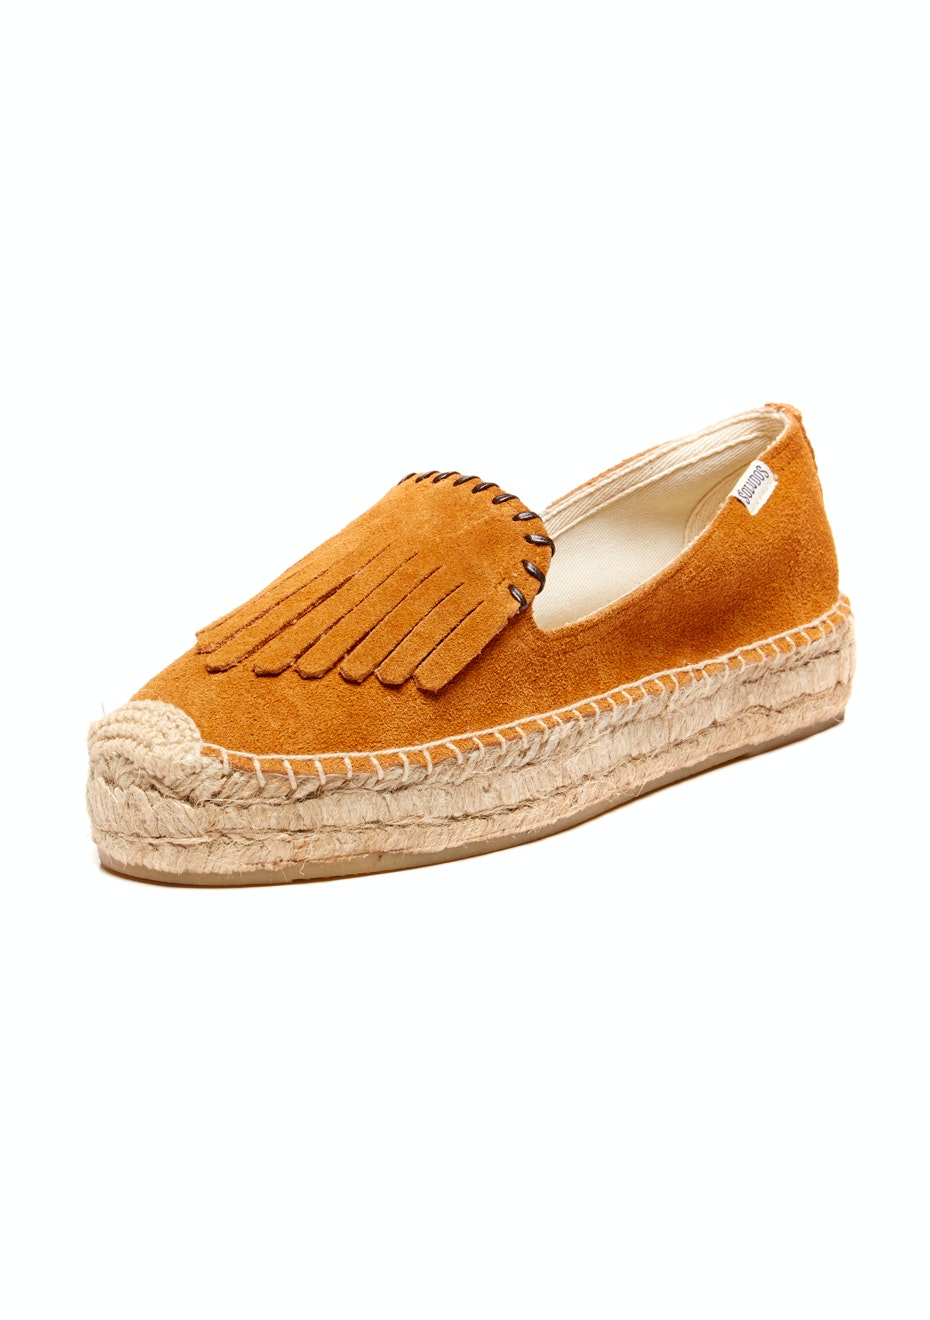 Soludos - Platform Smoking Slipper Suede Fringe - Saddle